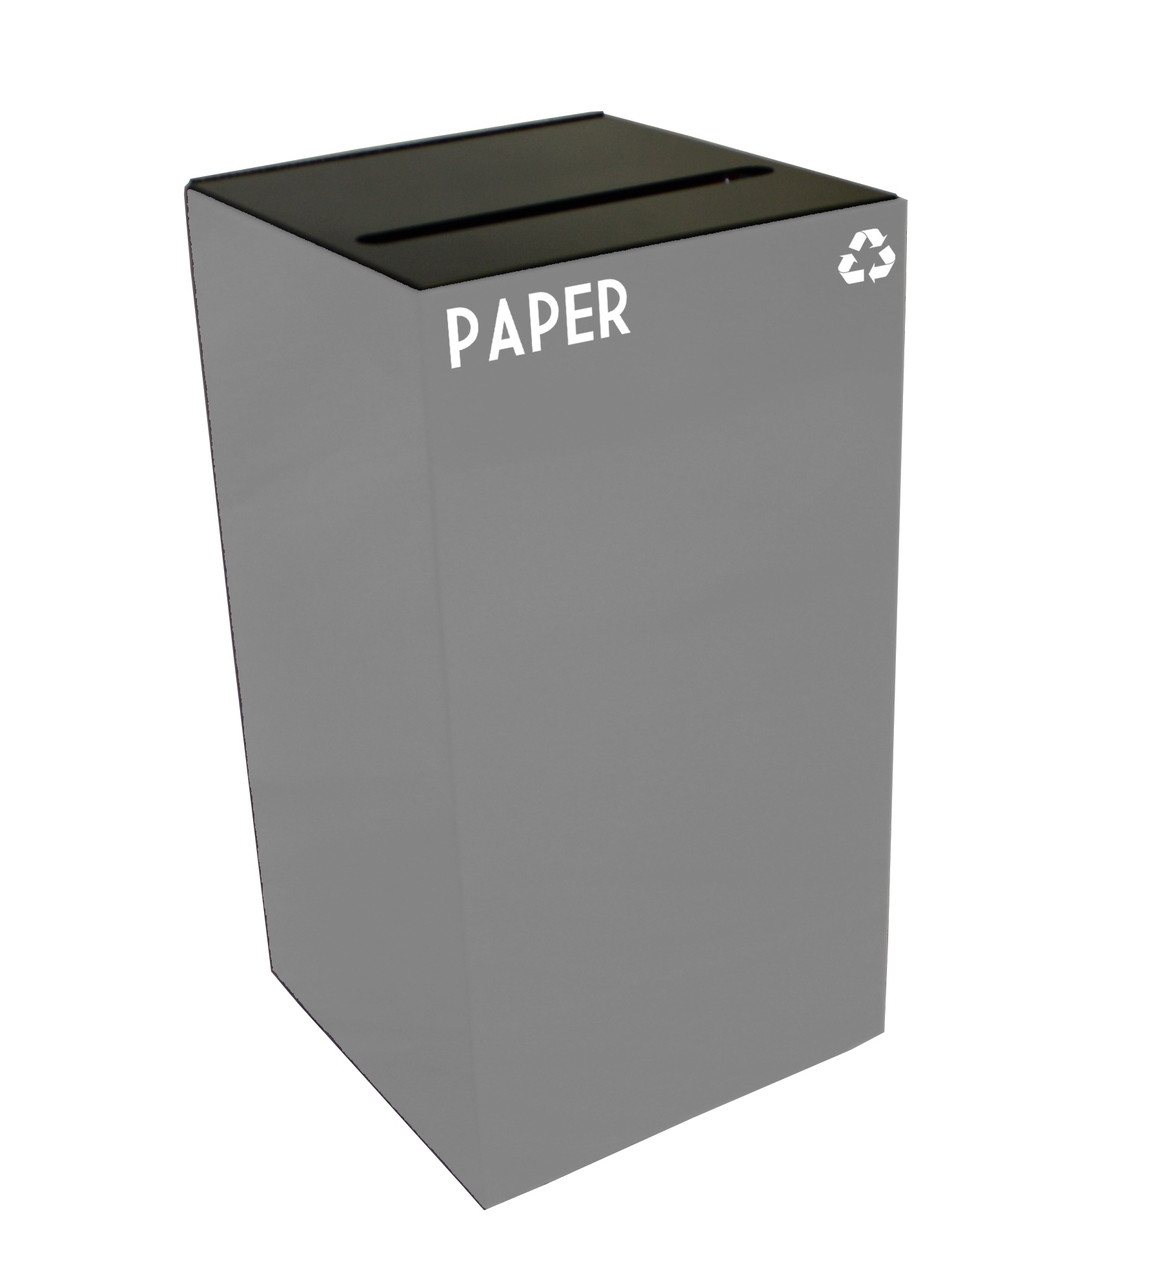 28 Gallon Metal Geocube 28GC0 Recycling Bin Receptacle for Paper